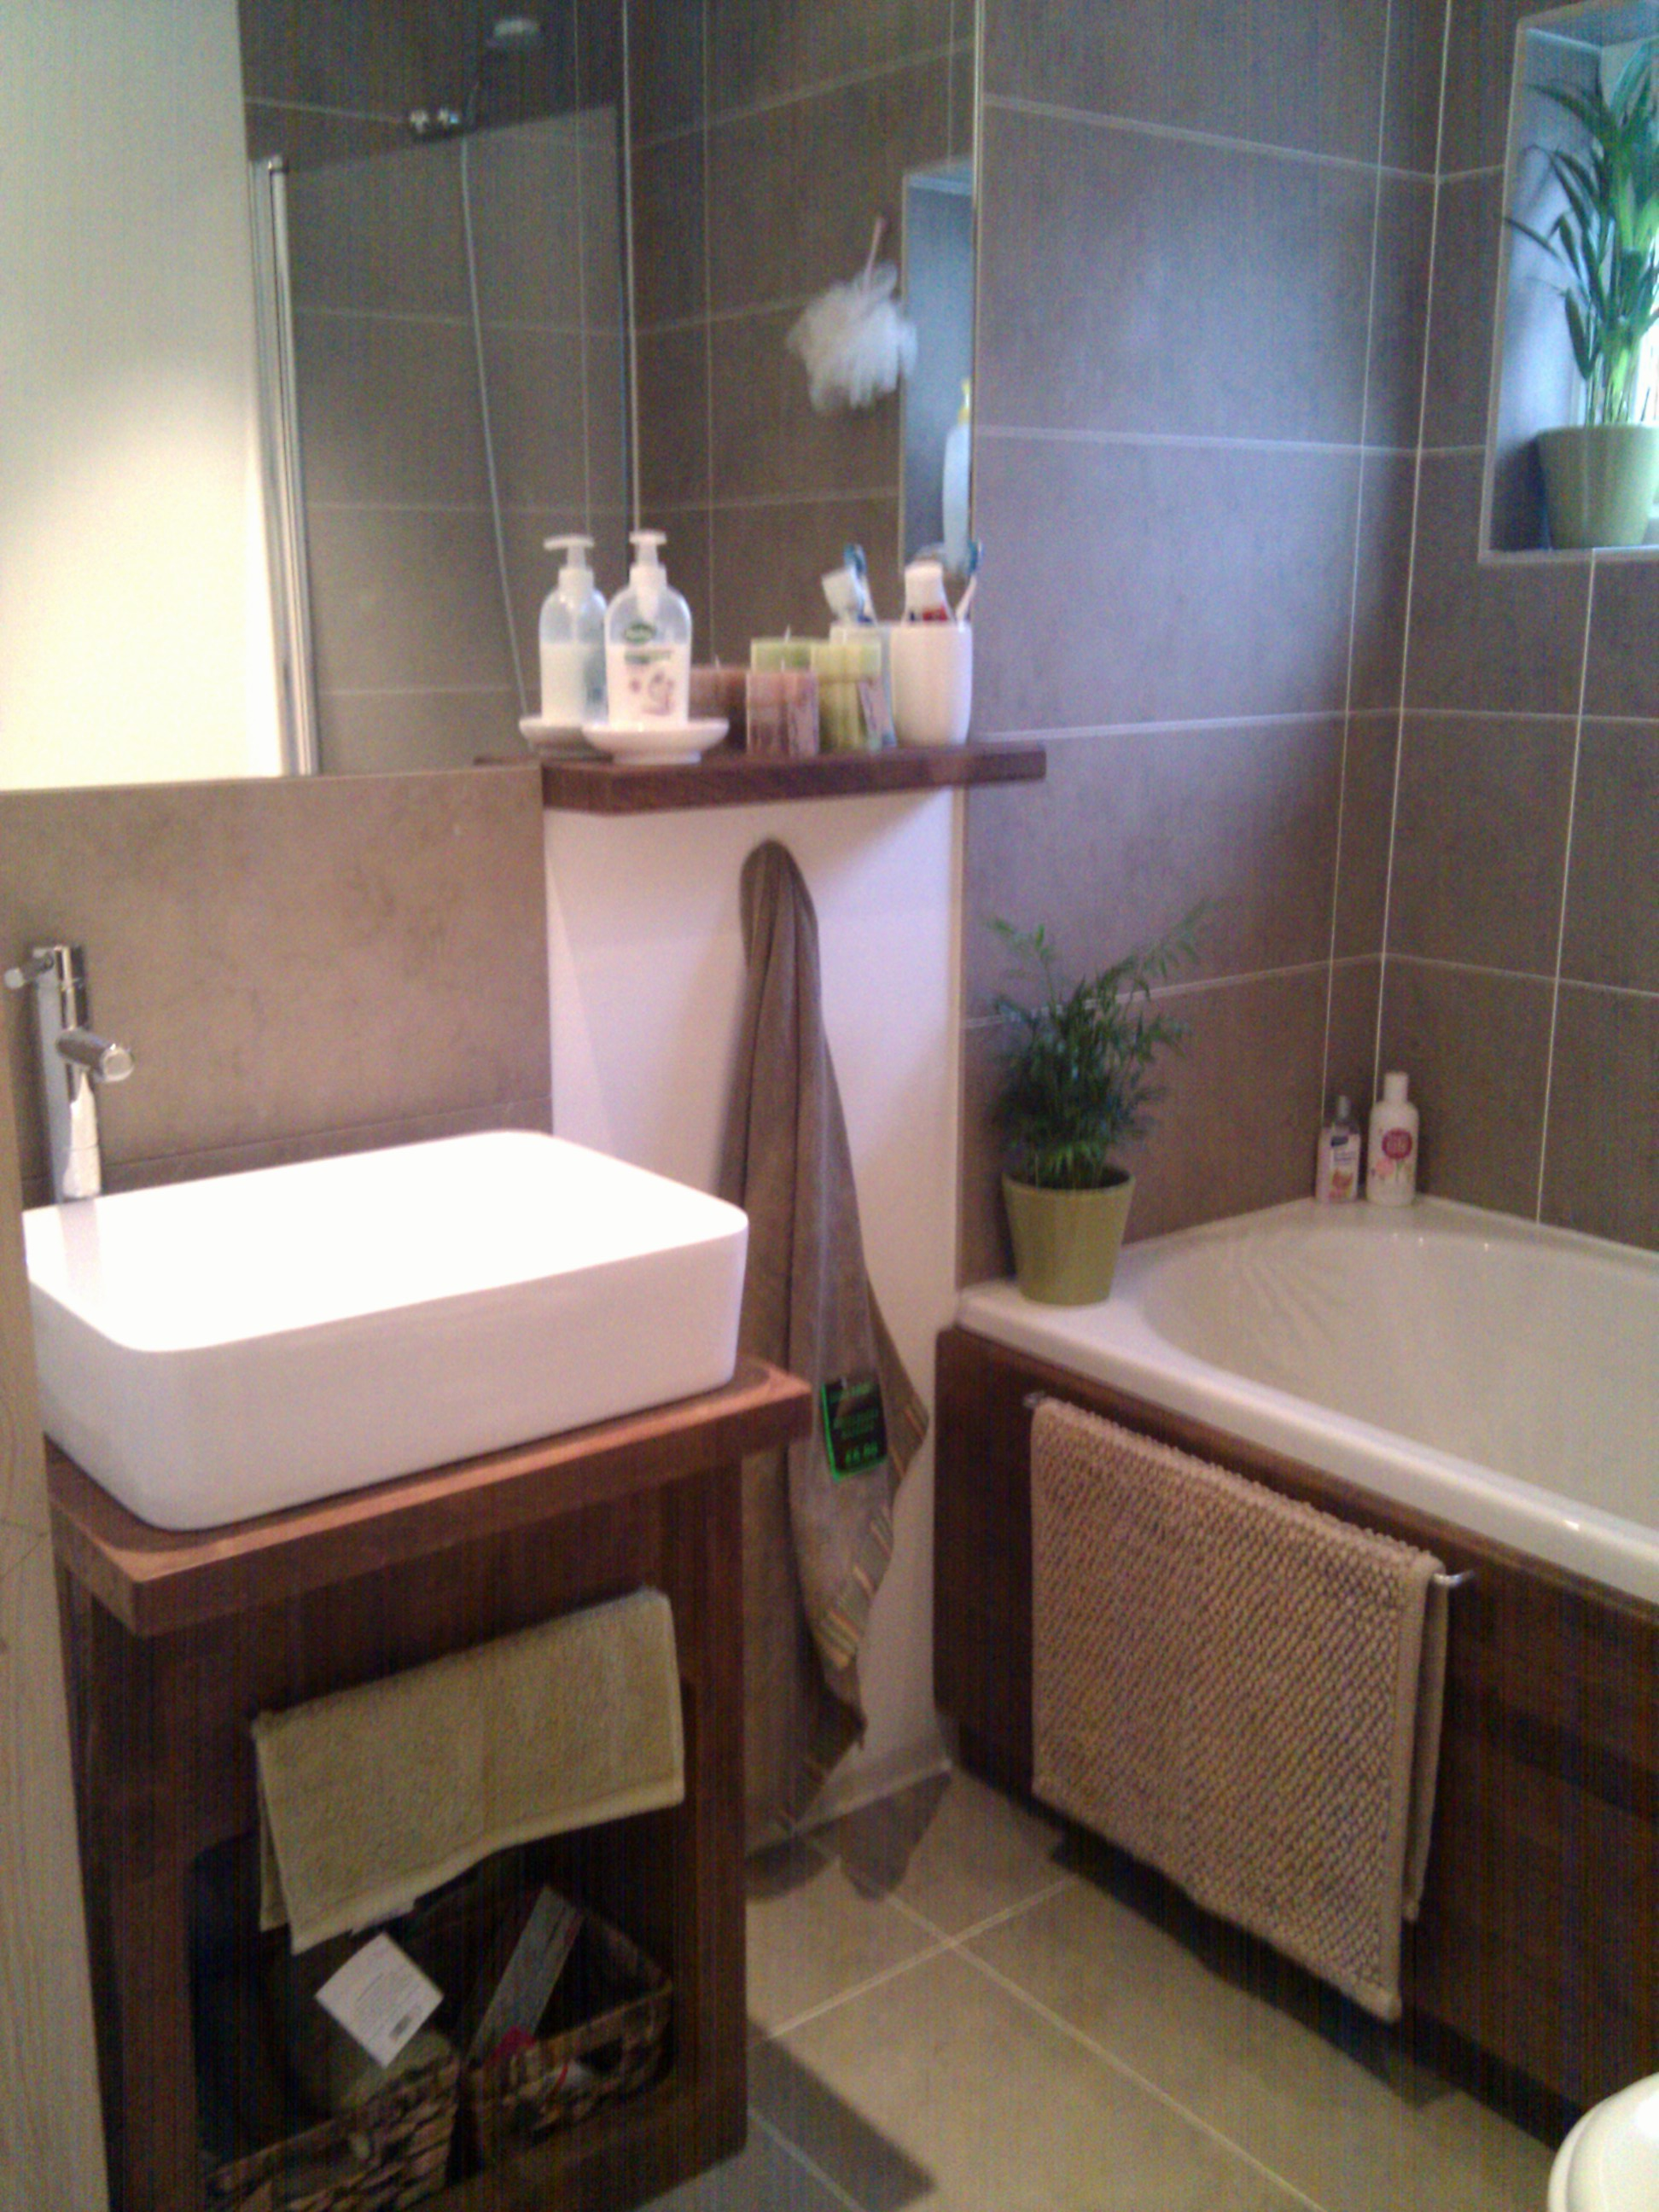 margate-bathroom-redesign-pic2.jpg